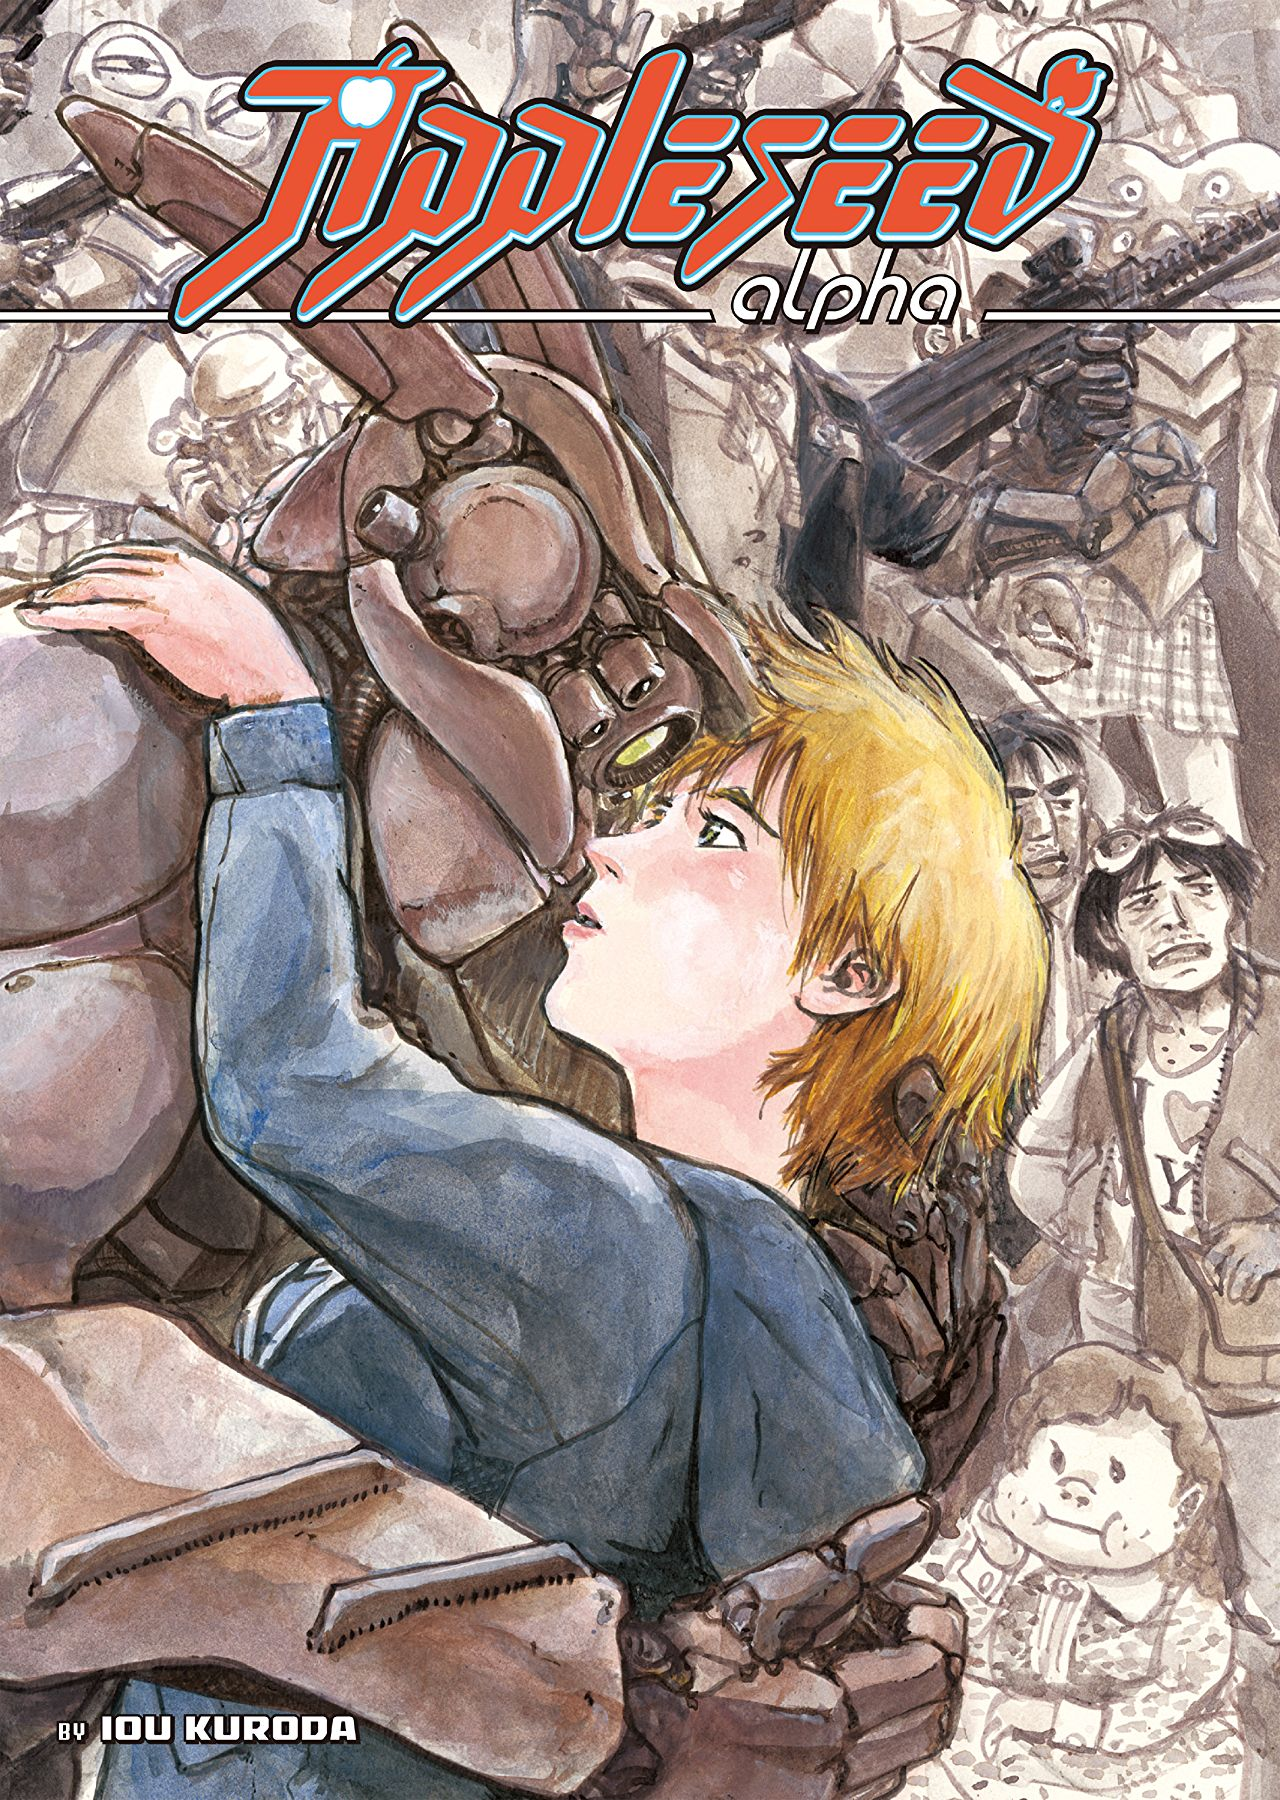 Appleseed Alpha Vol. 1 Review